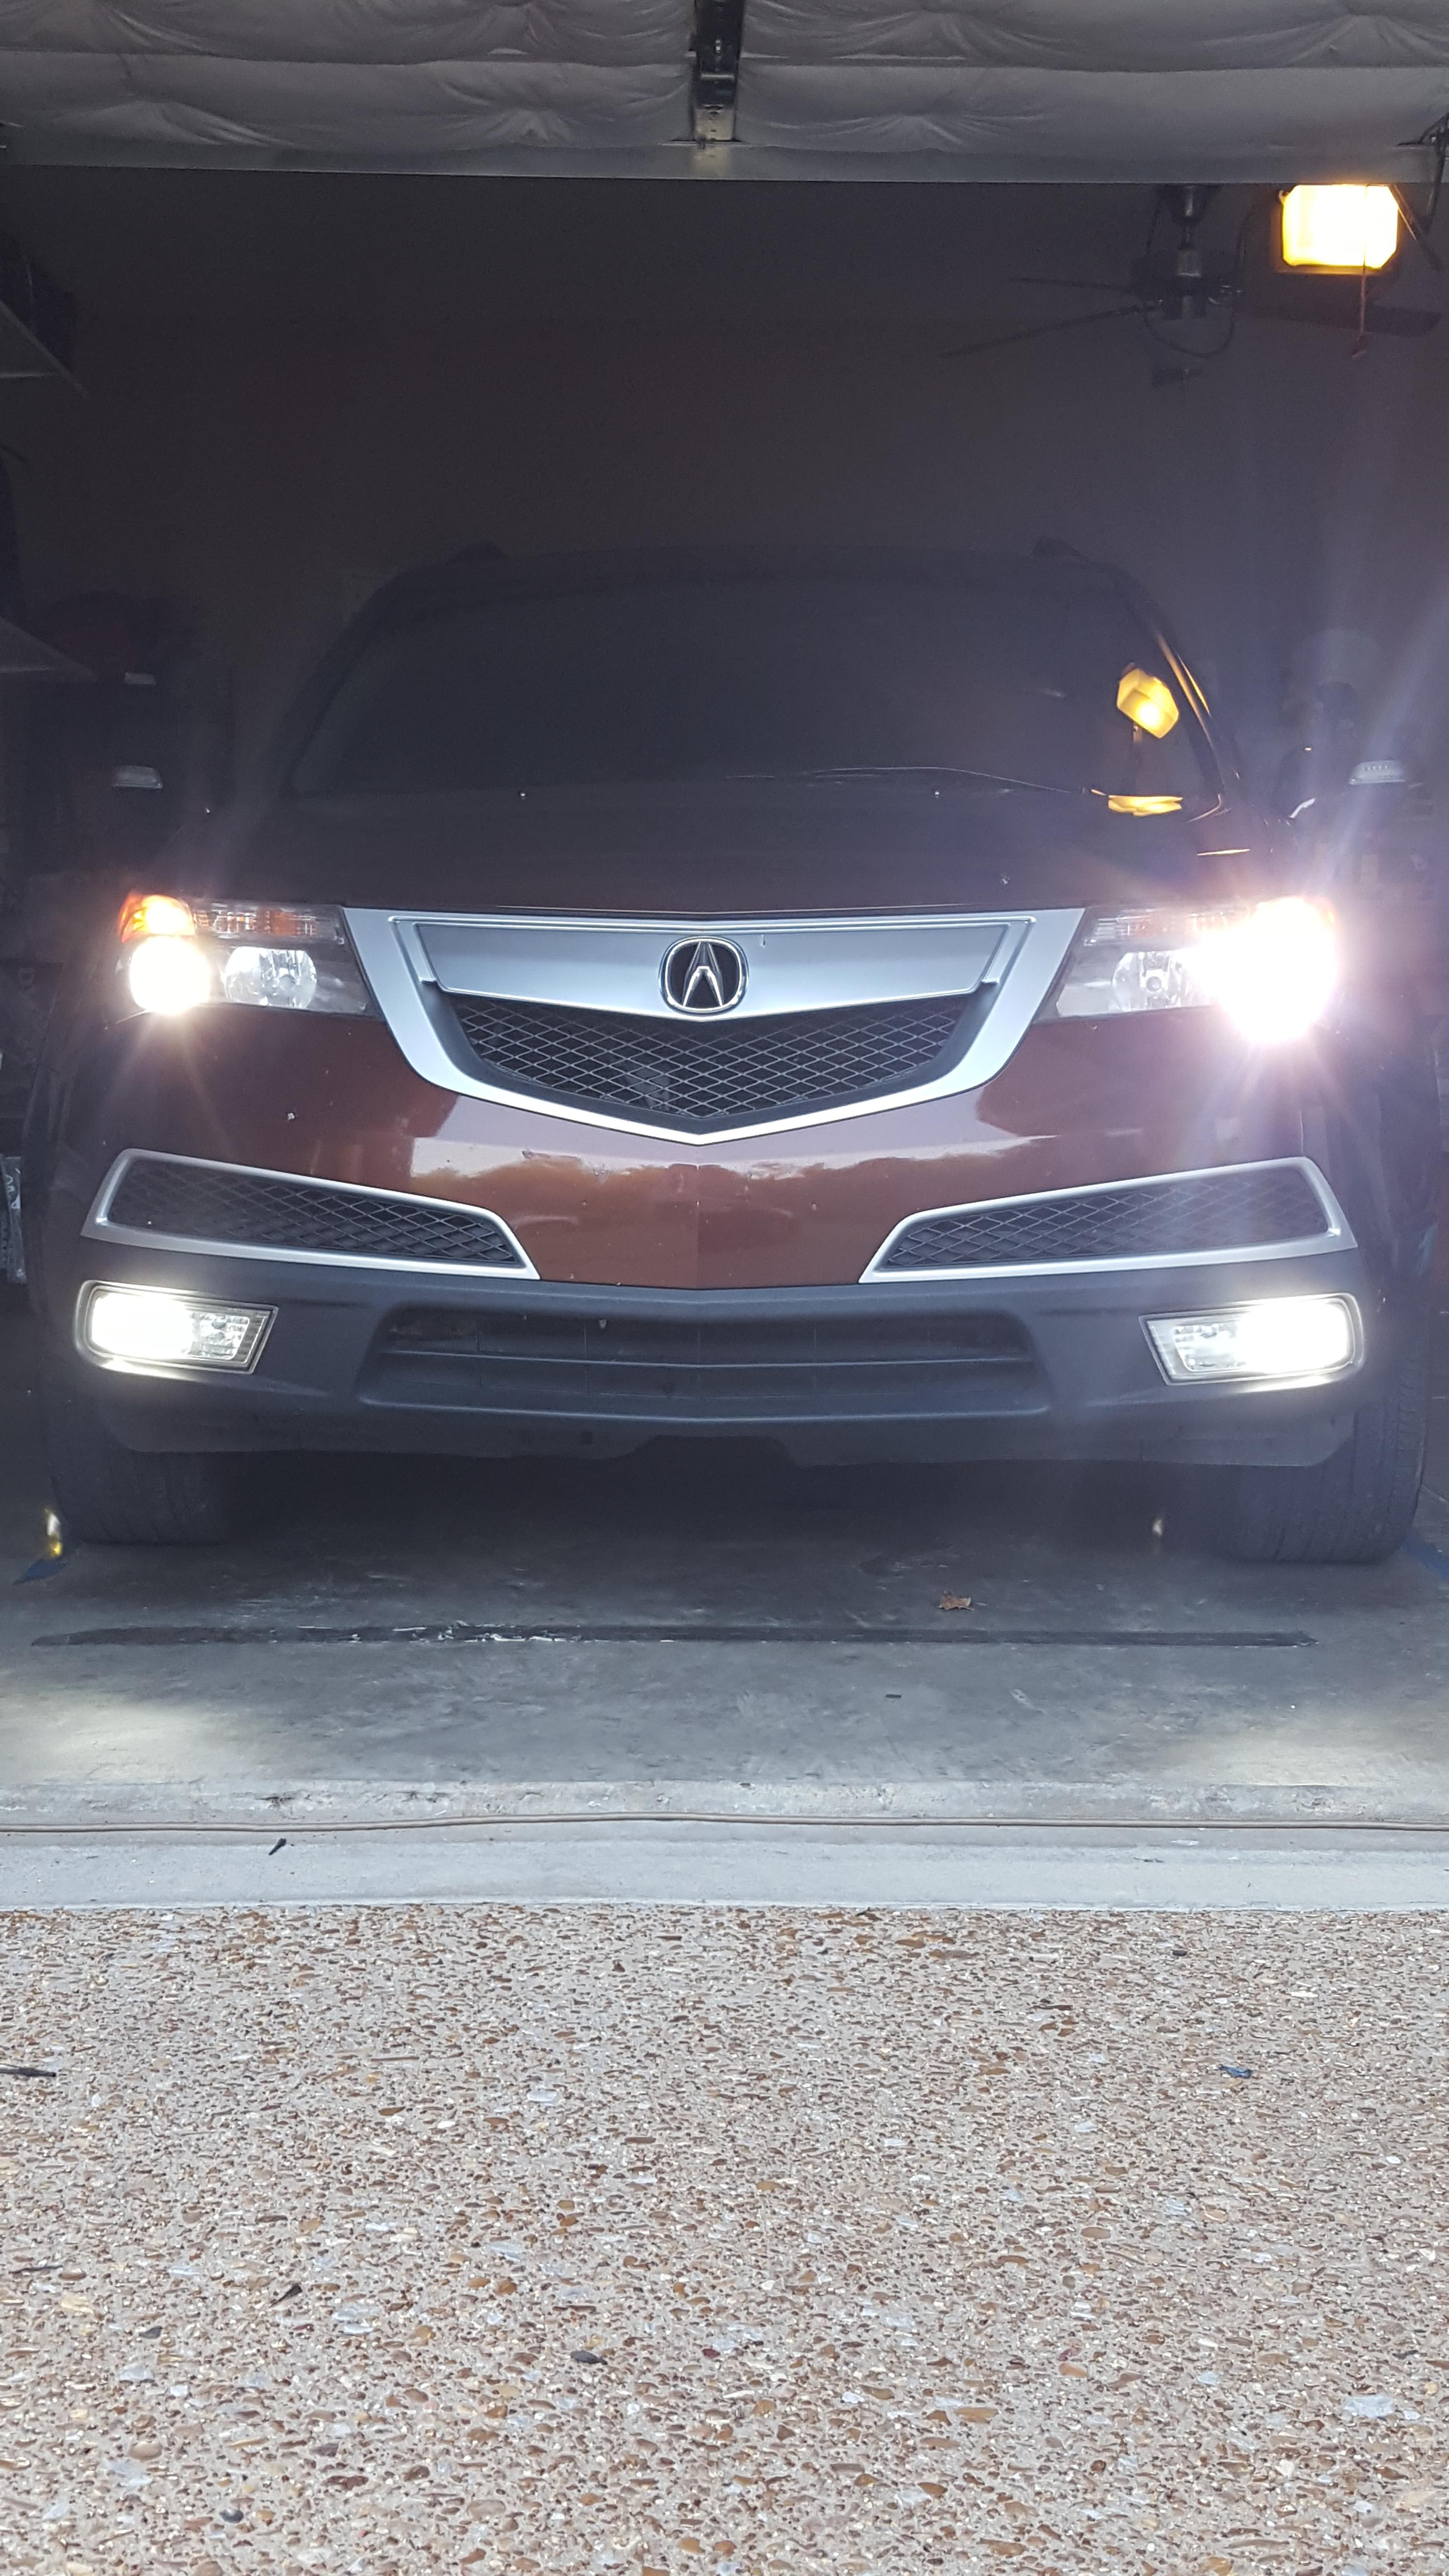 happen acura this r comments had their one has headlights to tl ever any